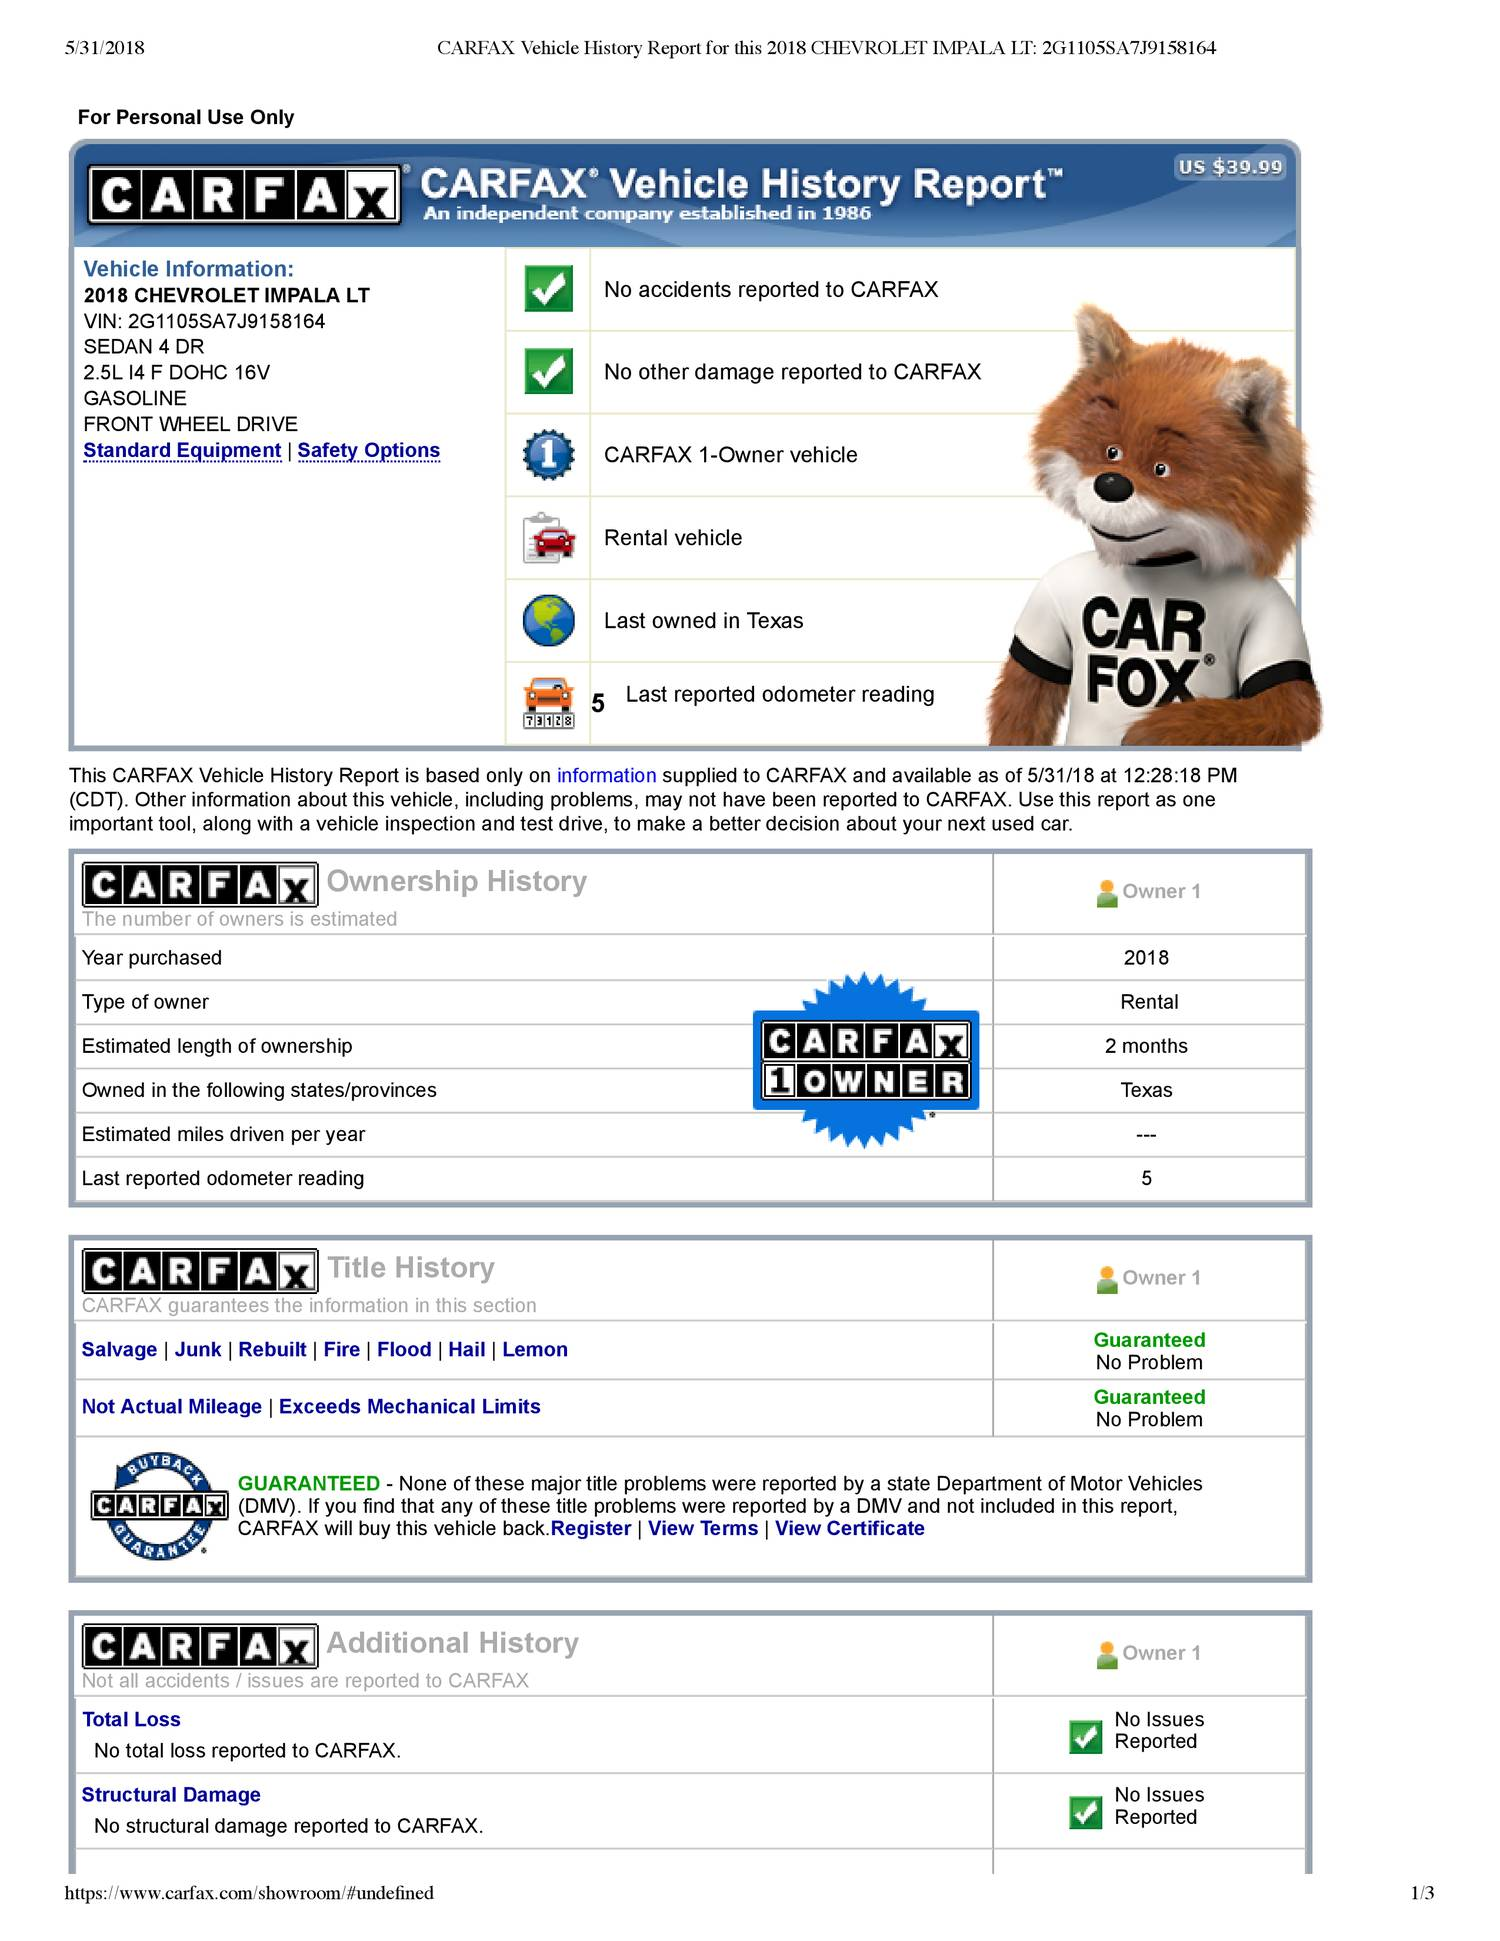 Carfax History Awesome Carfax Vehicle History Report for This 2018 Chevrolet Impala Lt